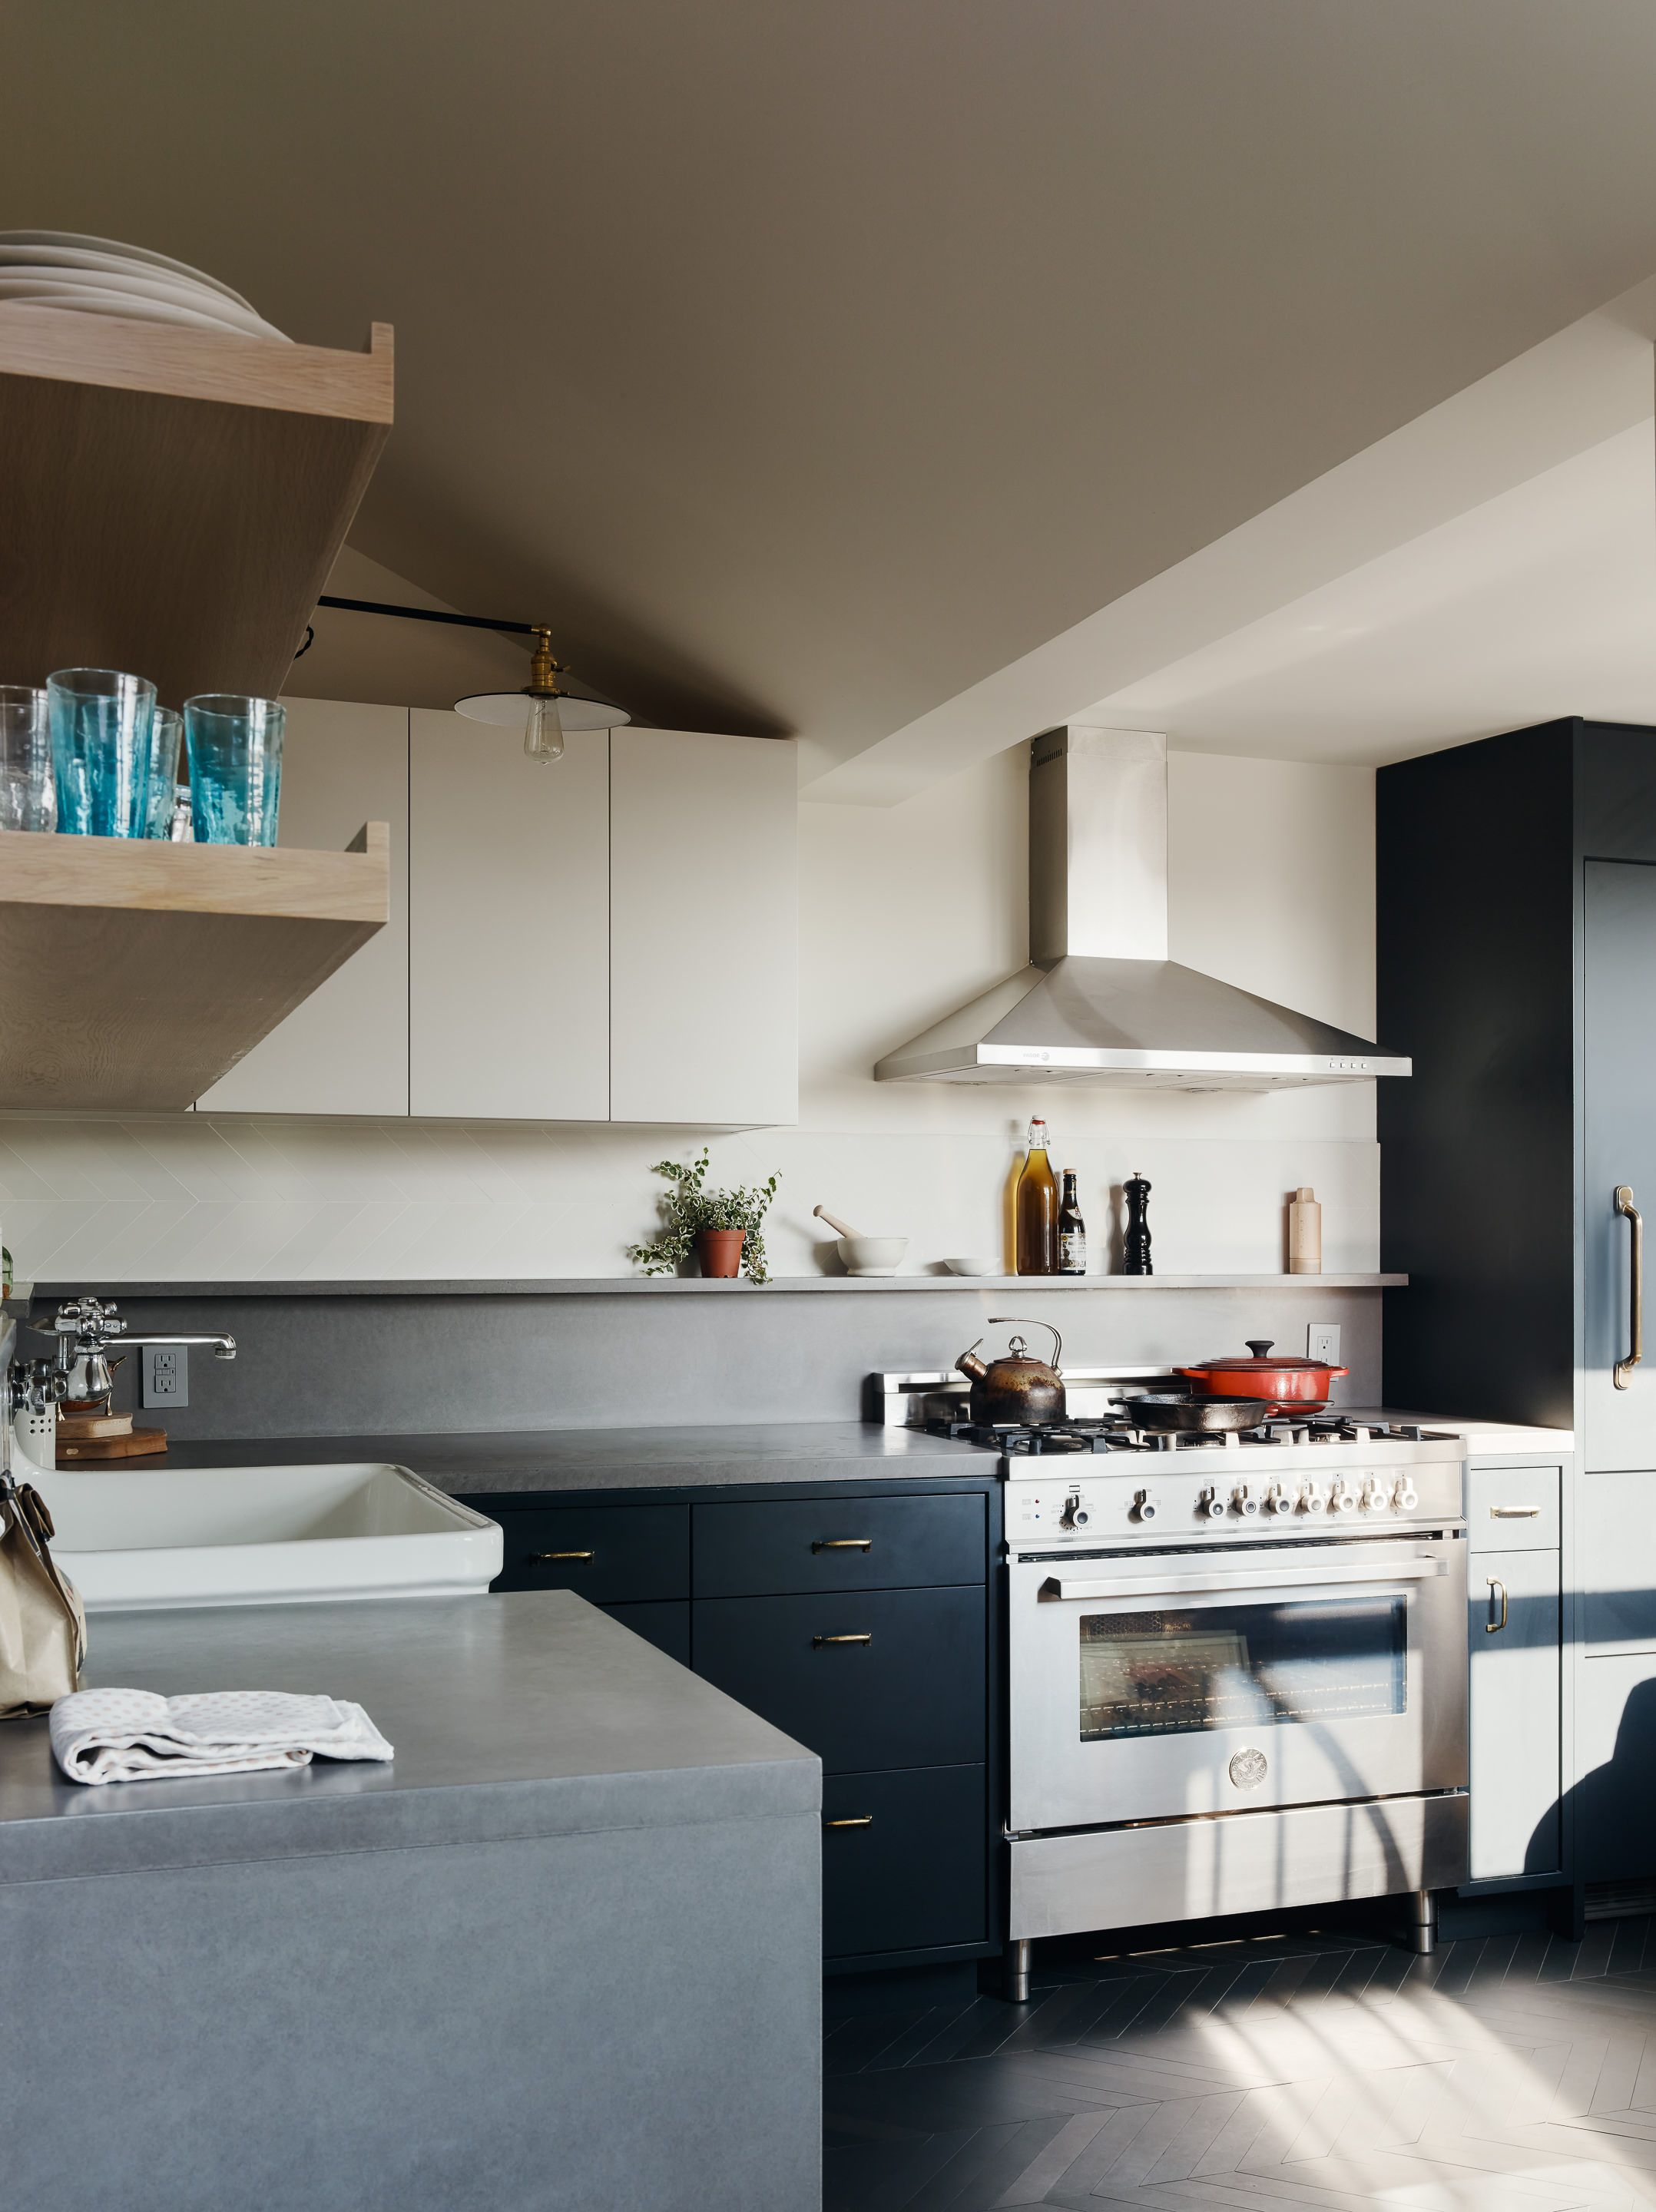 Before & After: In Brooklyn Heights, a Petite Flat Transformed